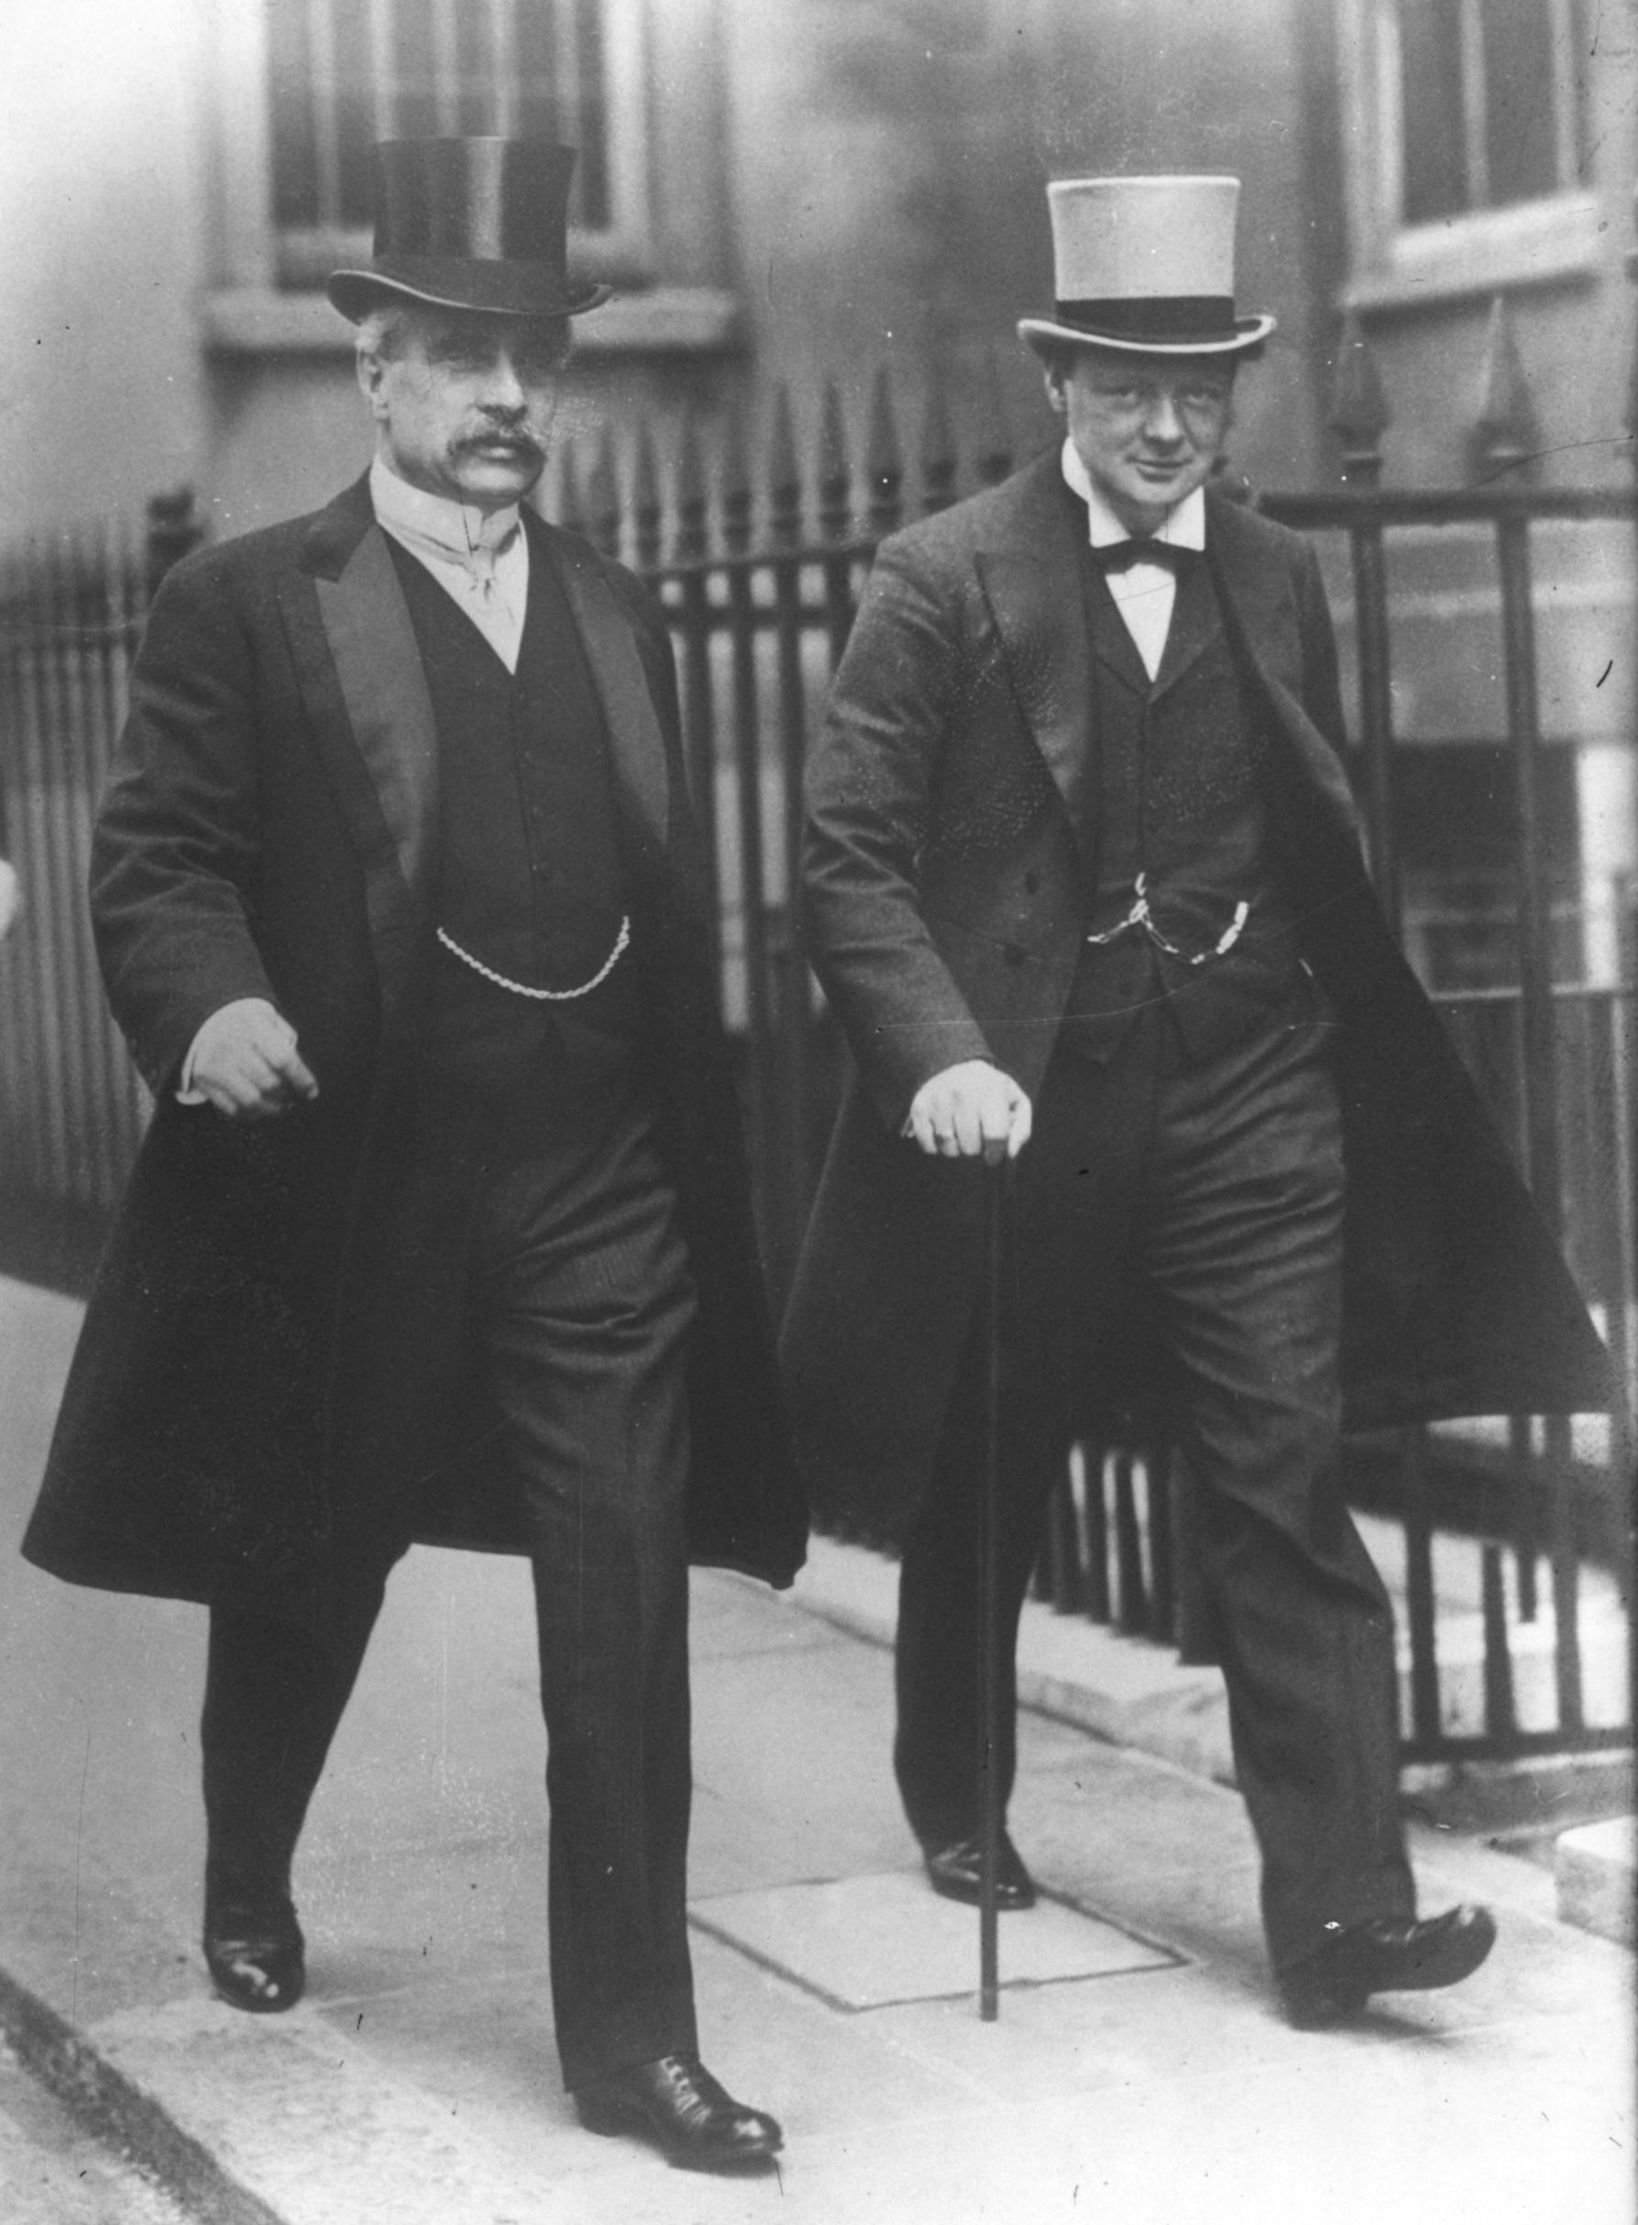 Canadian Prime Minister Robert Borden (1854-1937) and Winston Churchill (then First Lord of the Admiralty) in 1912. Location unknown.